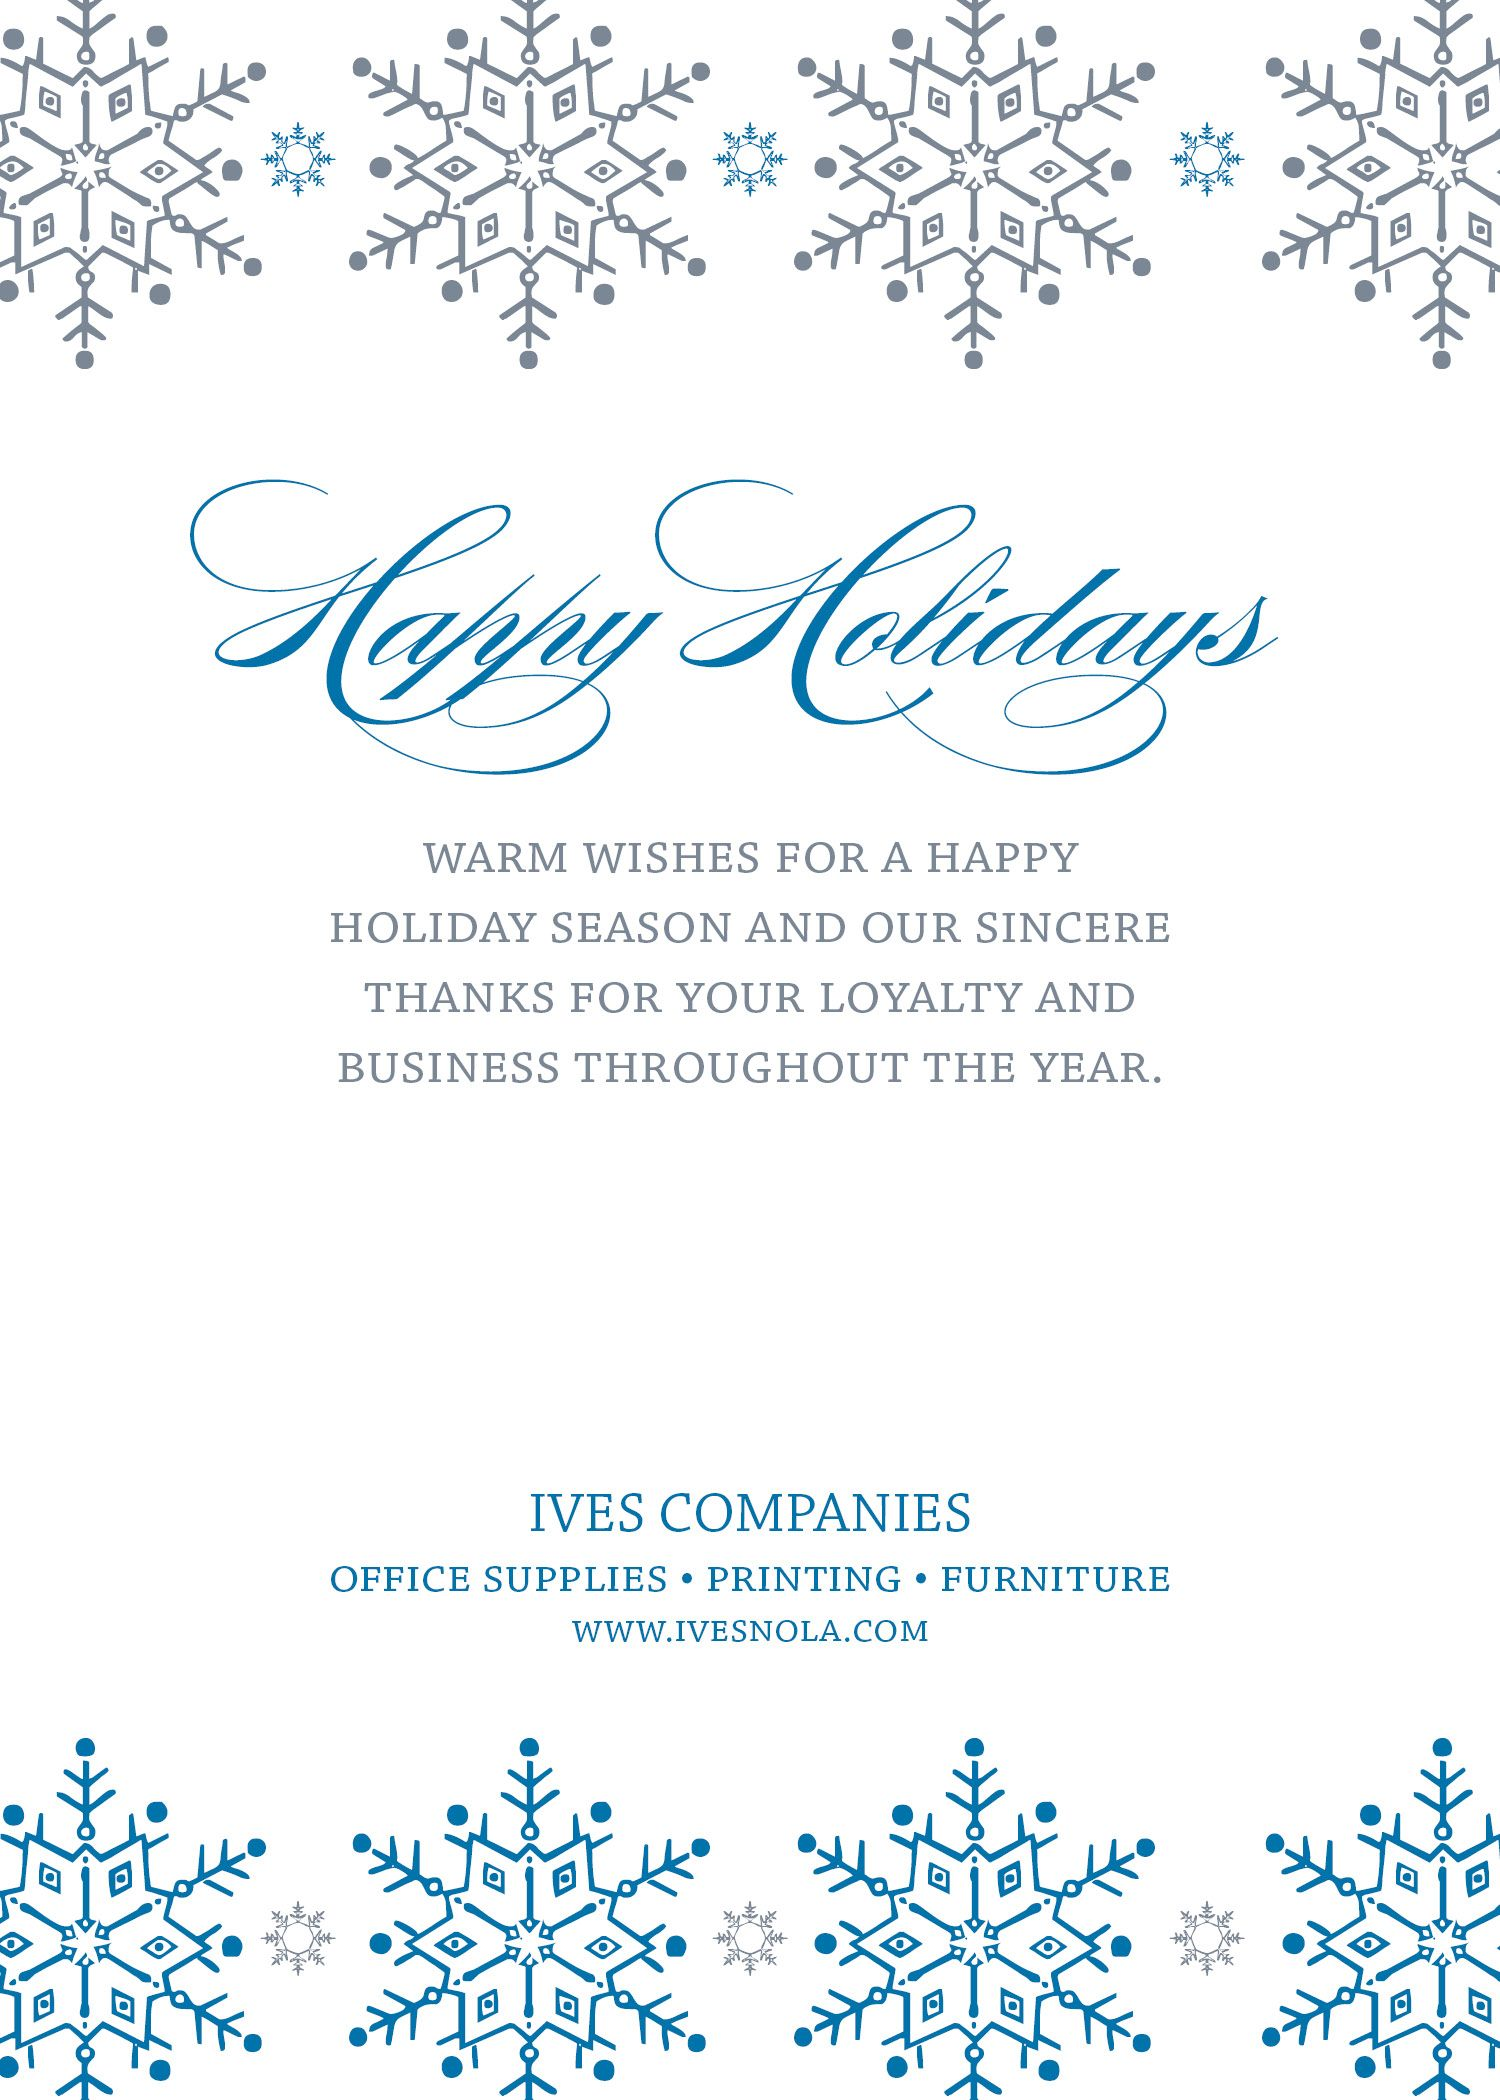 Corporate Holiday Card Design By Ives Office Supply Printing Furniture